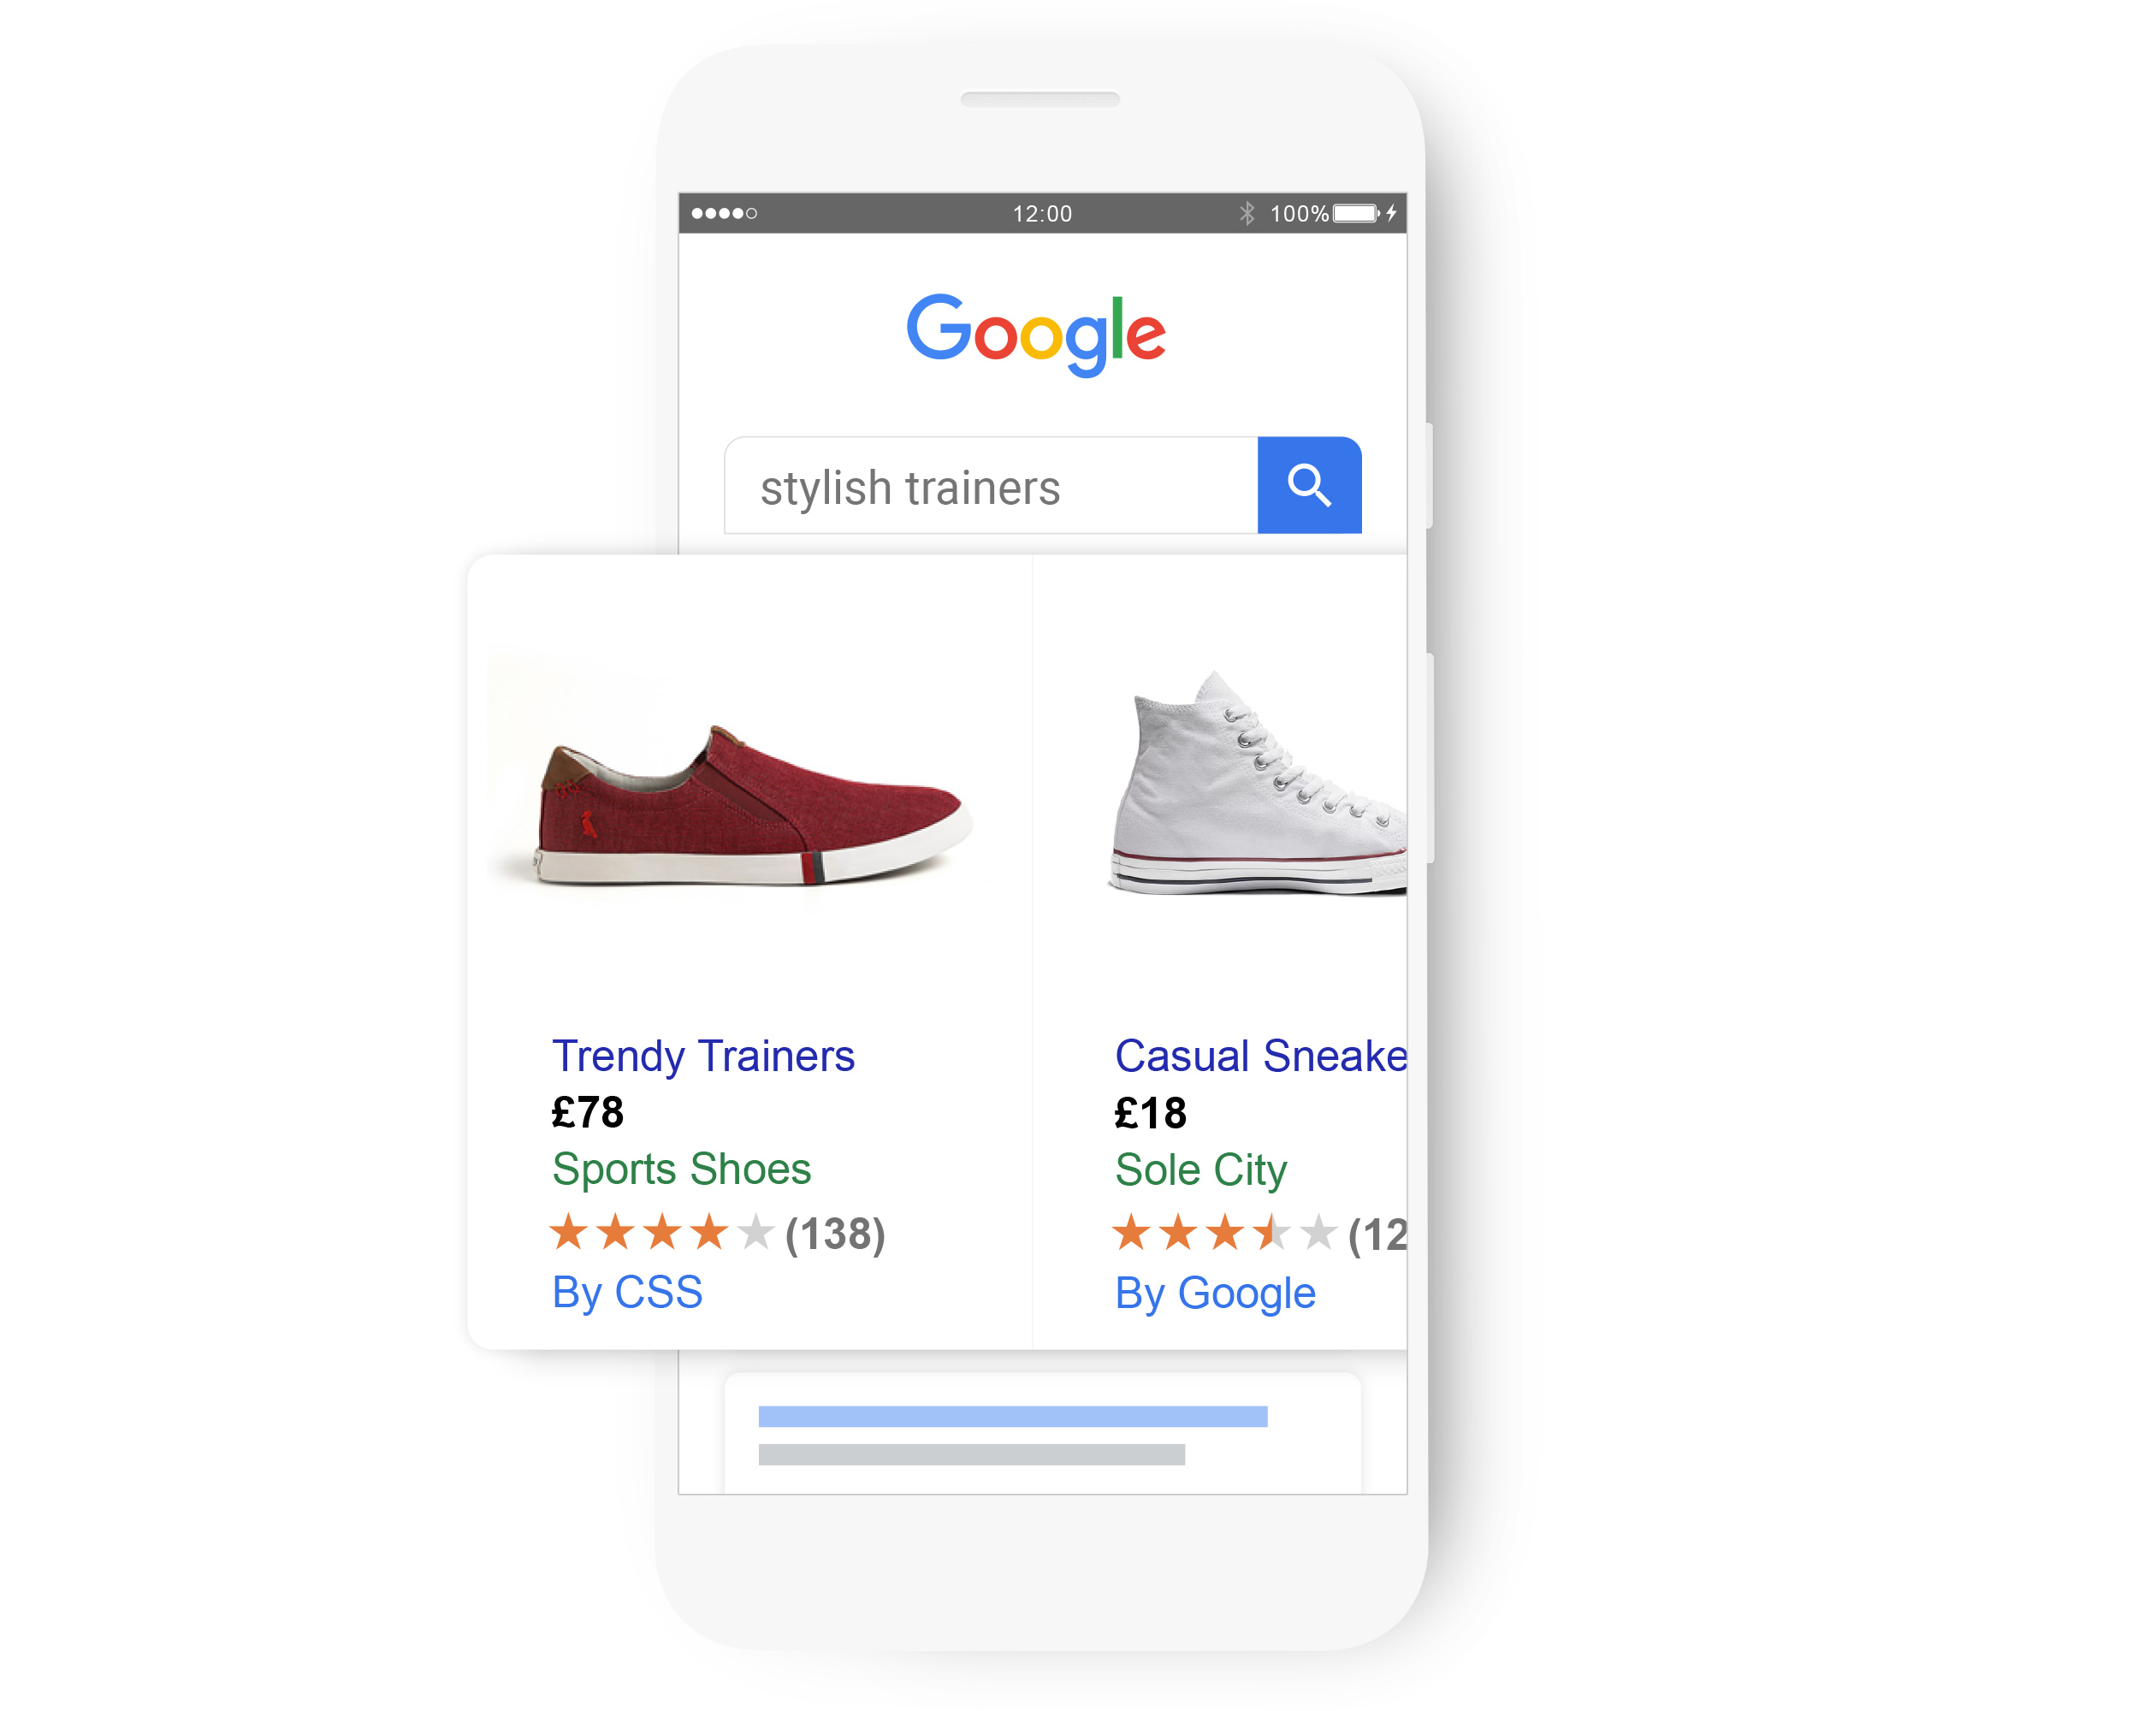 A Google search for 'stylish trainers' bringing up a relevant Shopping ad